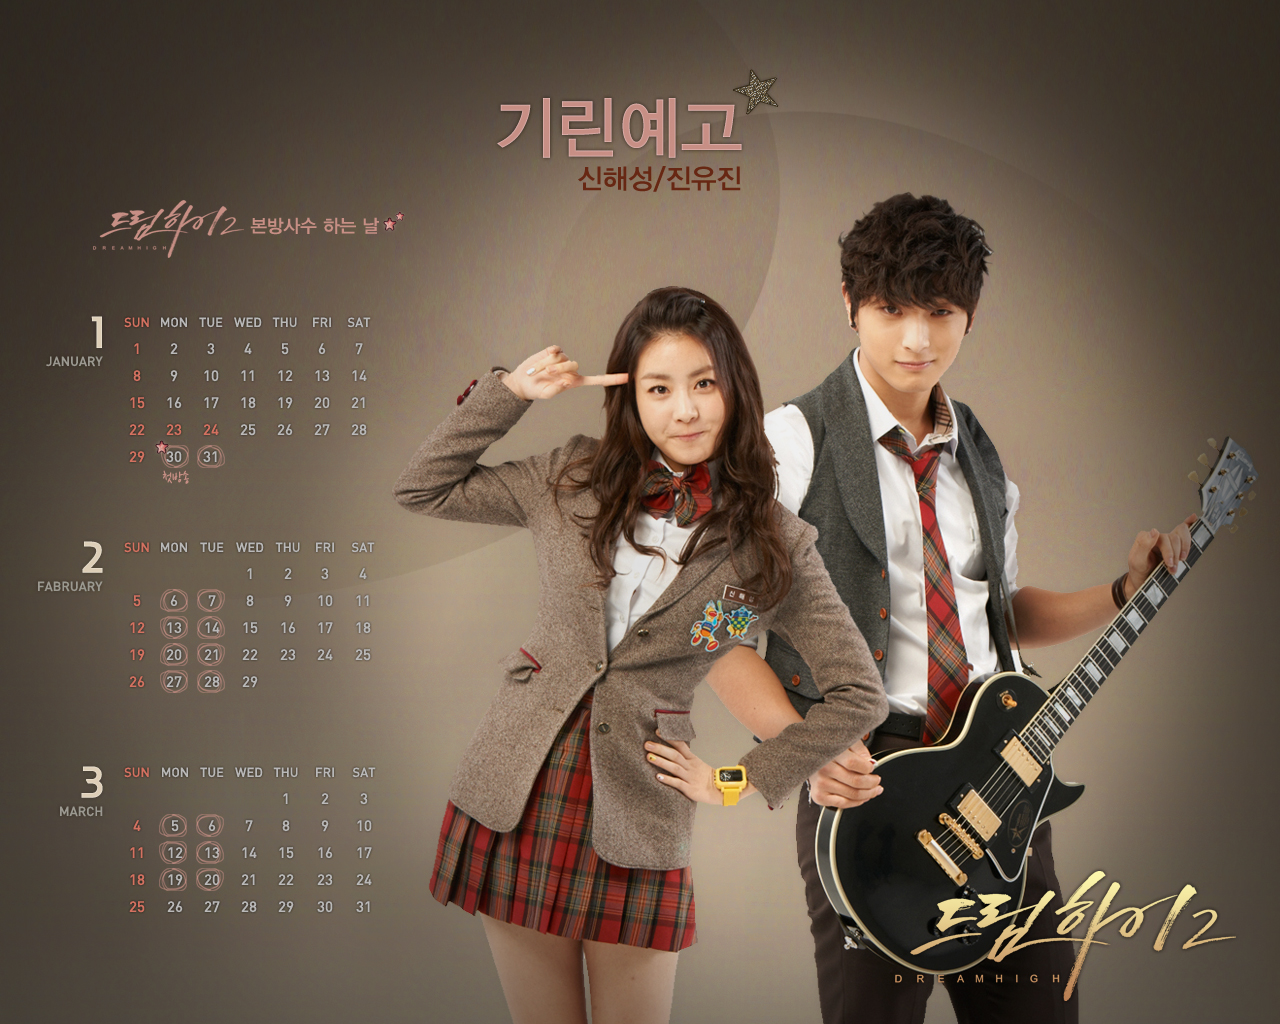 Dream High 2 Official Wallpapers Free Download - Drama Haven